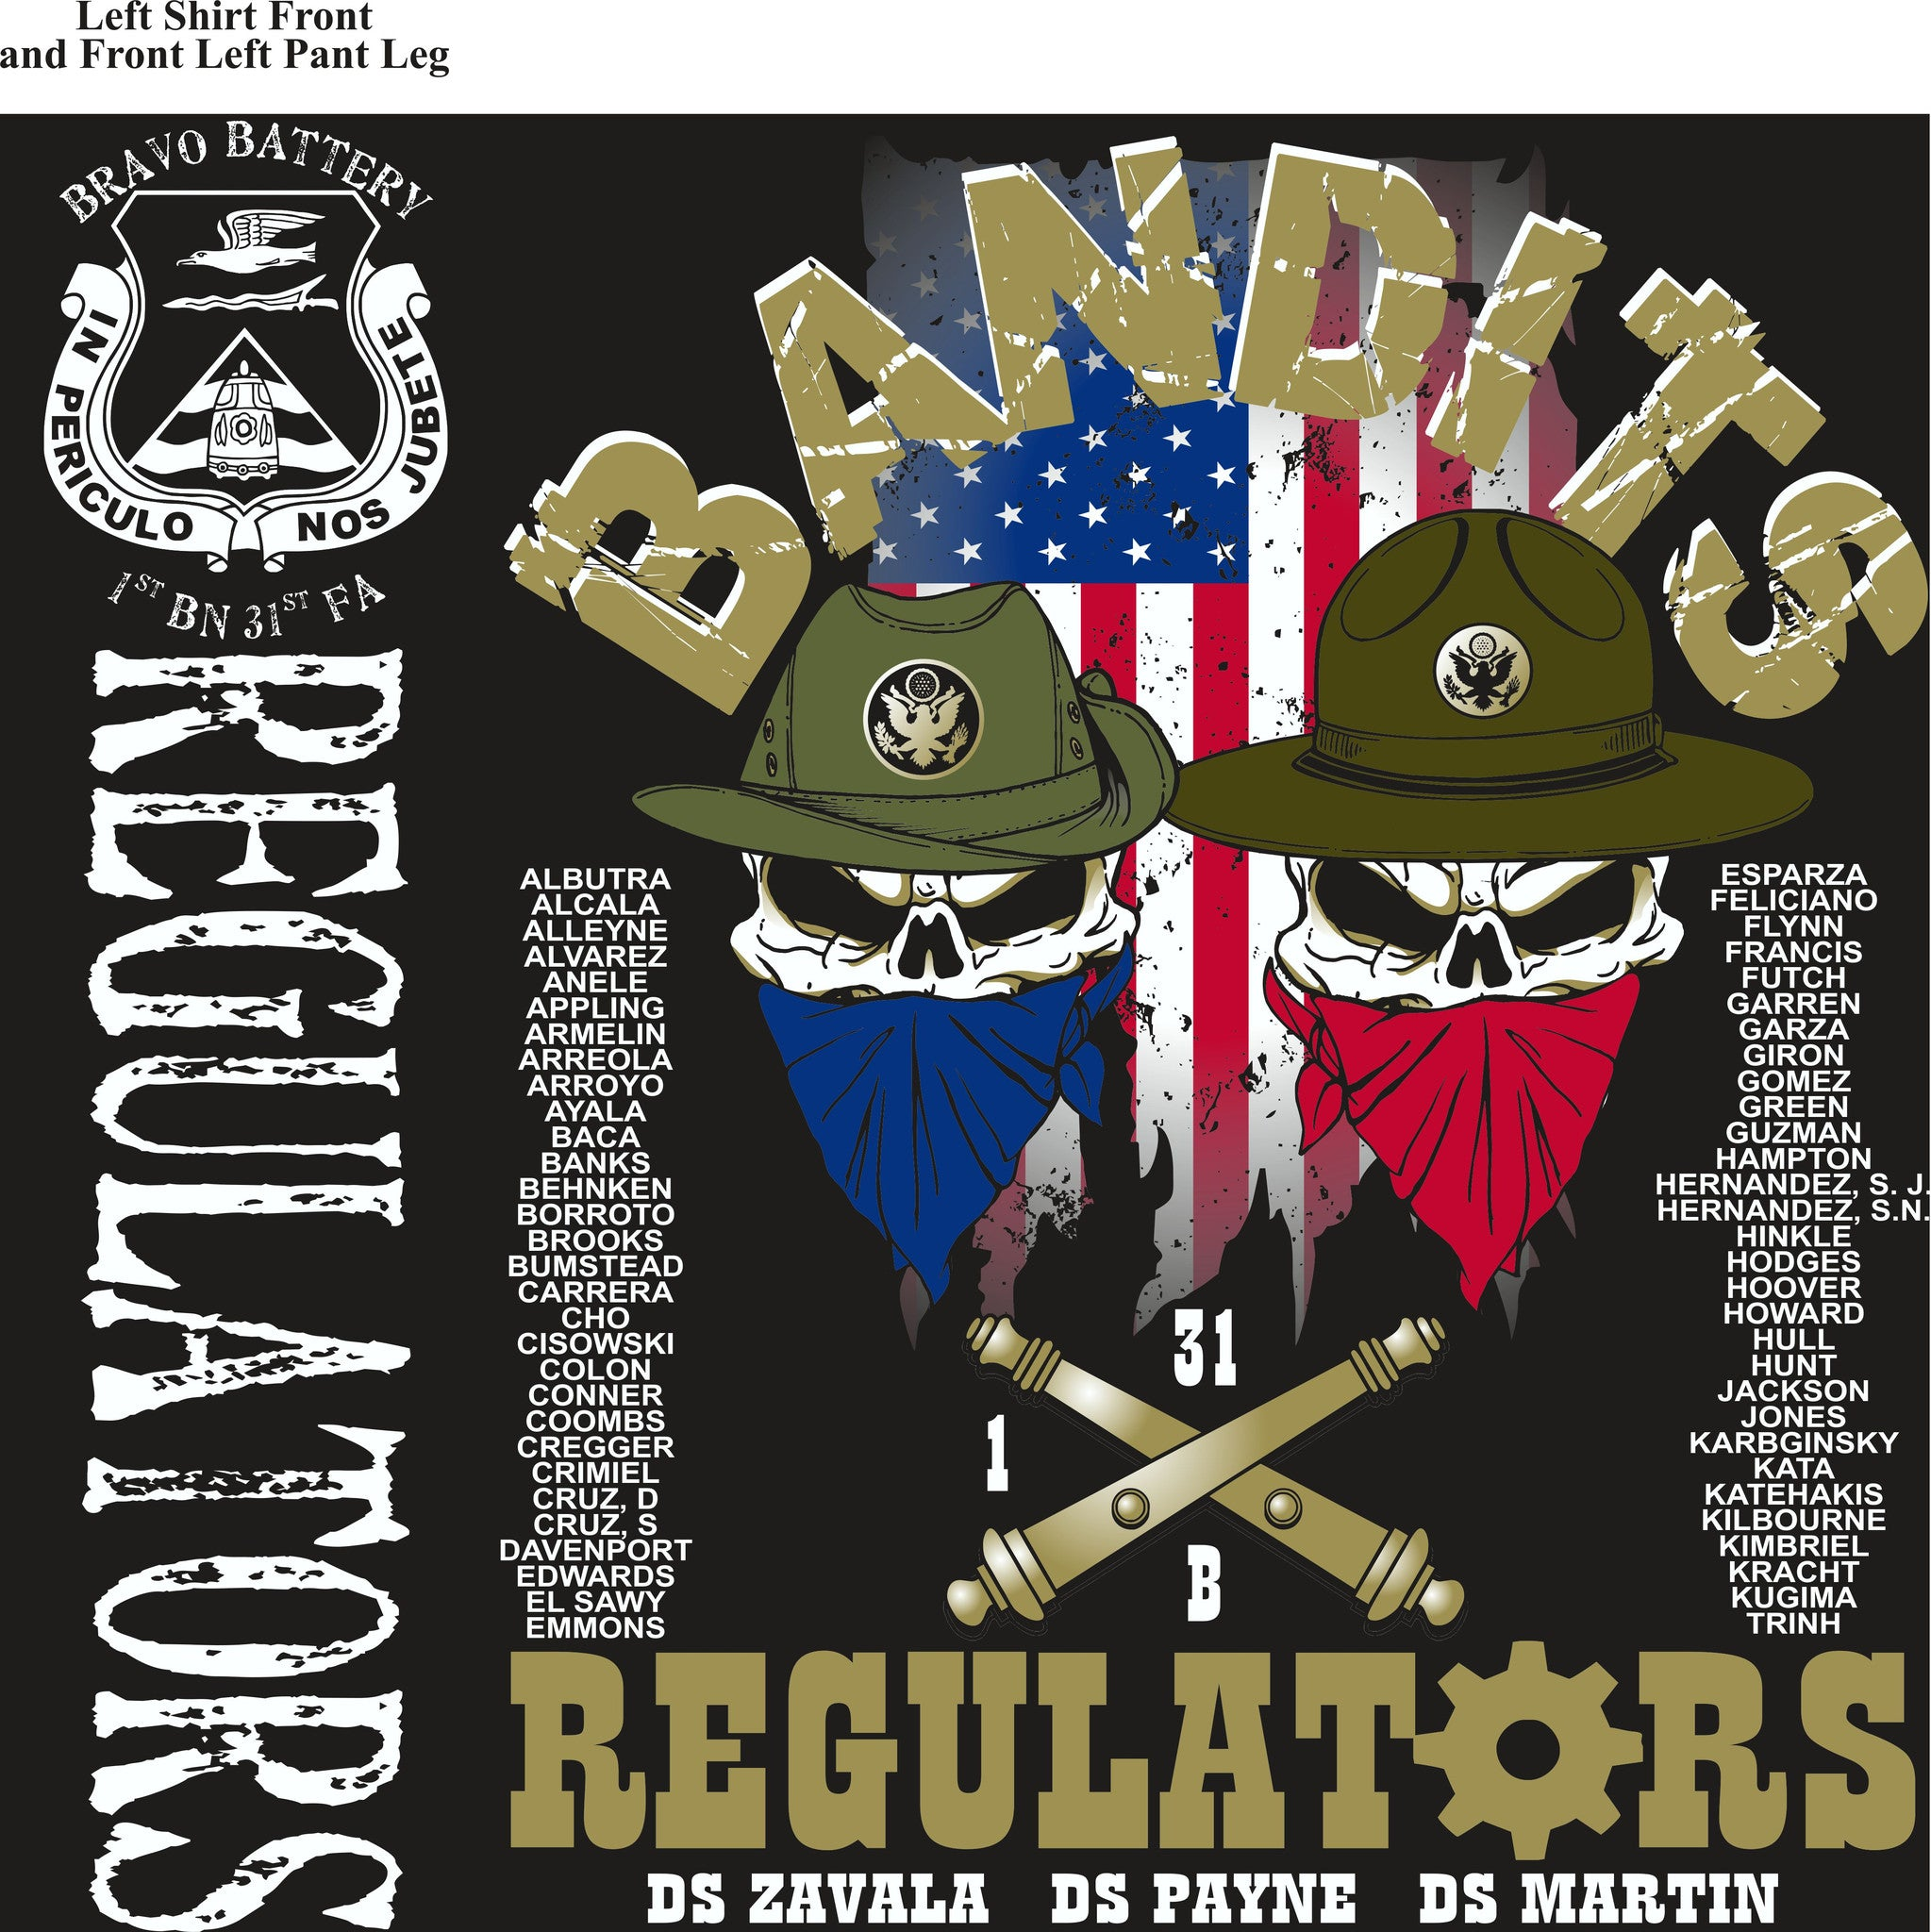 PLATOON SHIRTS (2nd generation print) BRAVO 1st 31st REGULATORS APR 2017